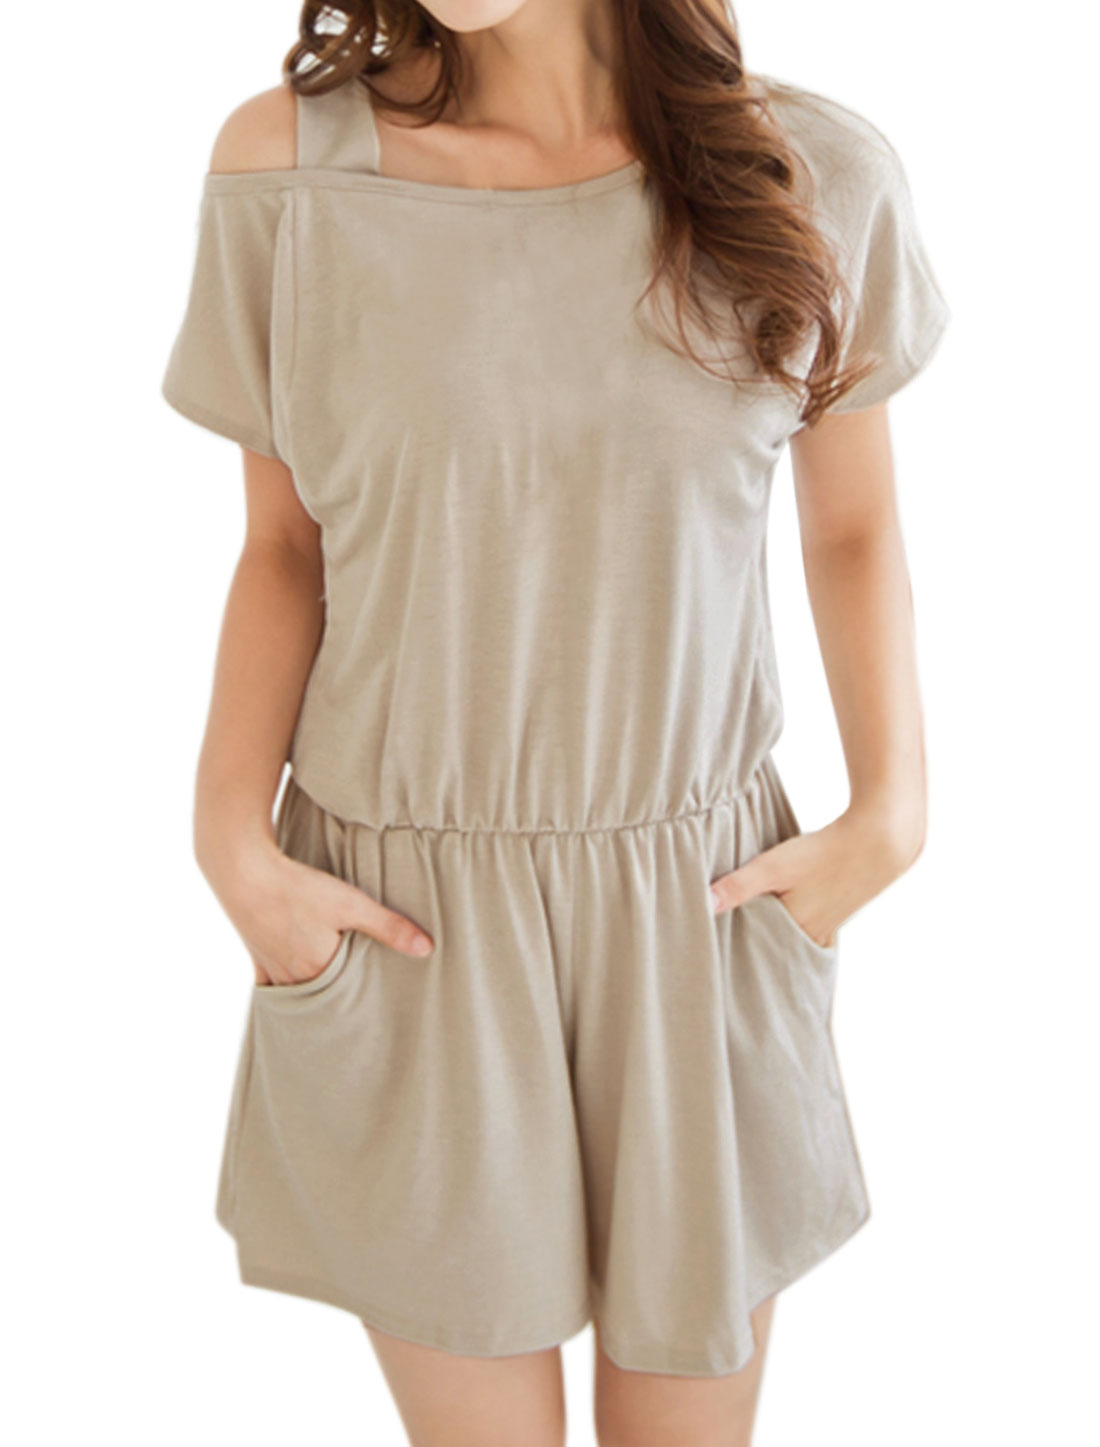 Women One Cut Out Shoulder Batwing Sleeves Loose Romper Beige XS